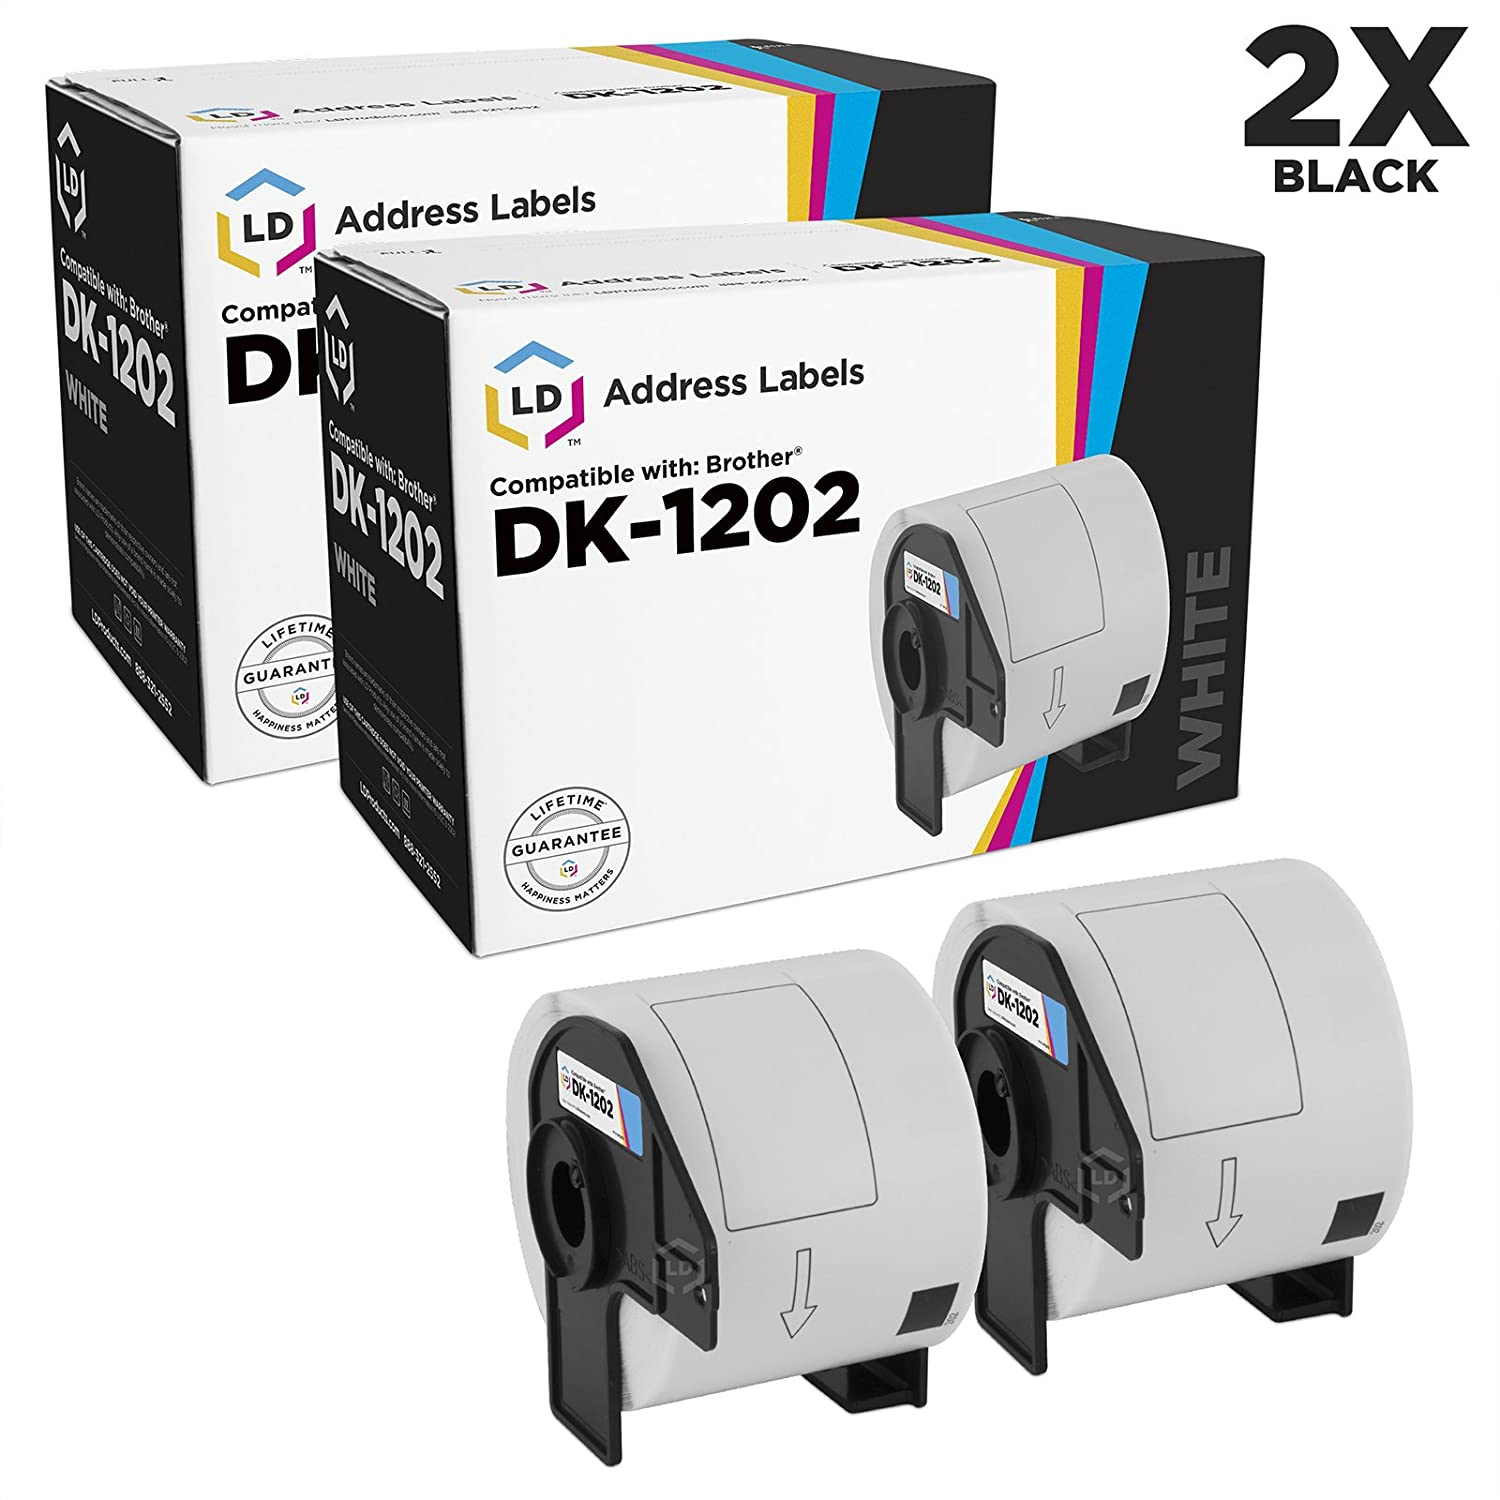 LD © Compatible Brother DK-1202 Shipping Labels / 2.4 in x 3.9 in LD Products DK1202